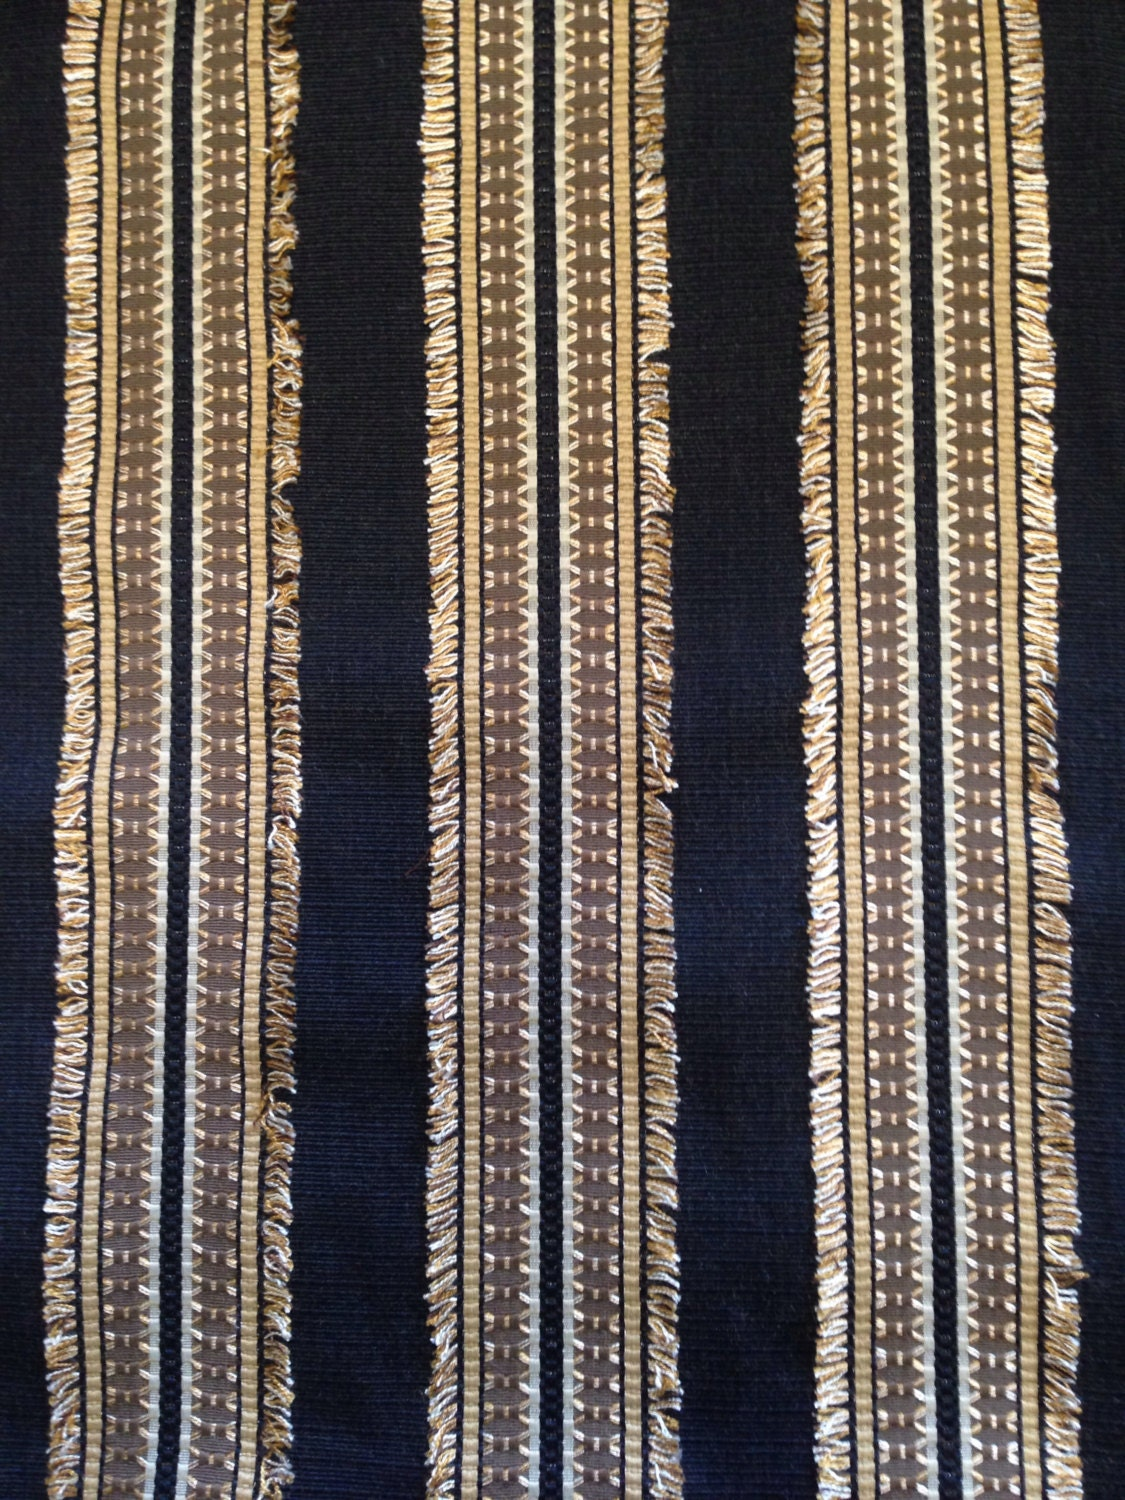 Gold And Black Eyelash Striped Upholstery Fabric Textured